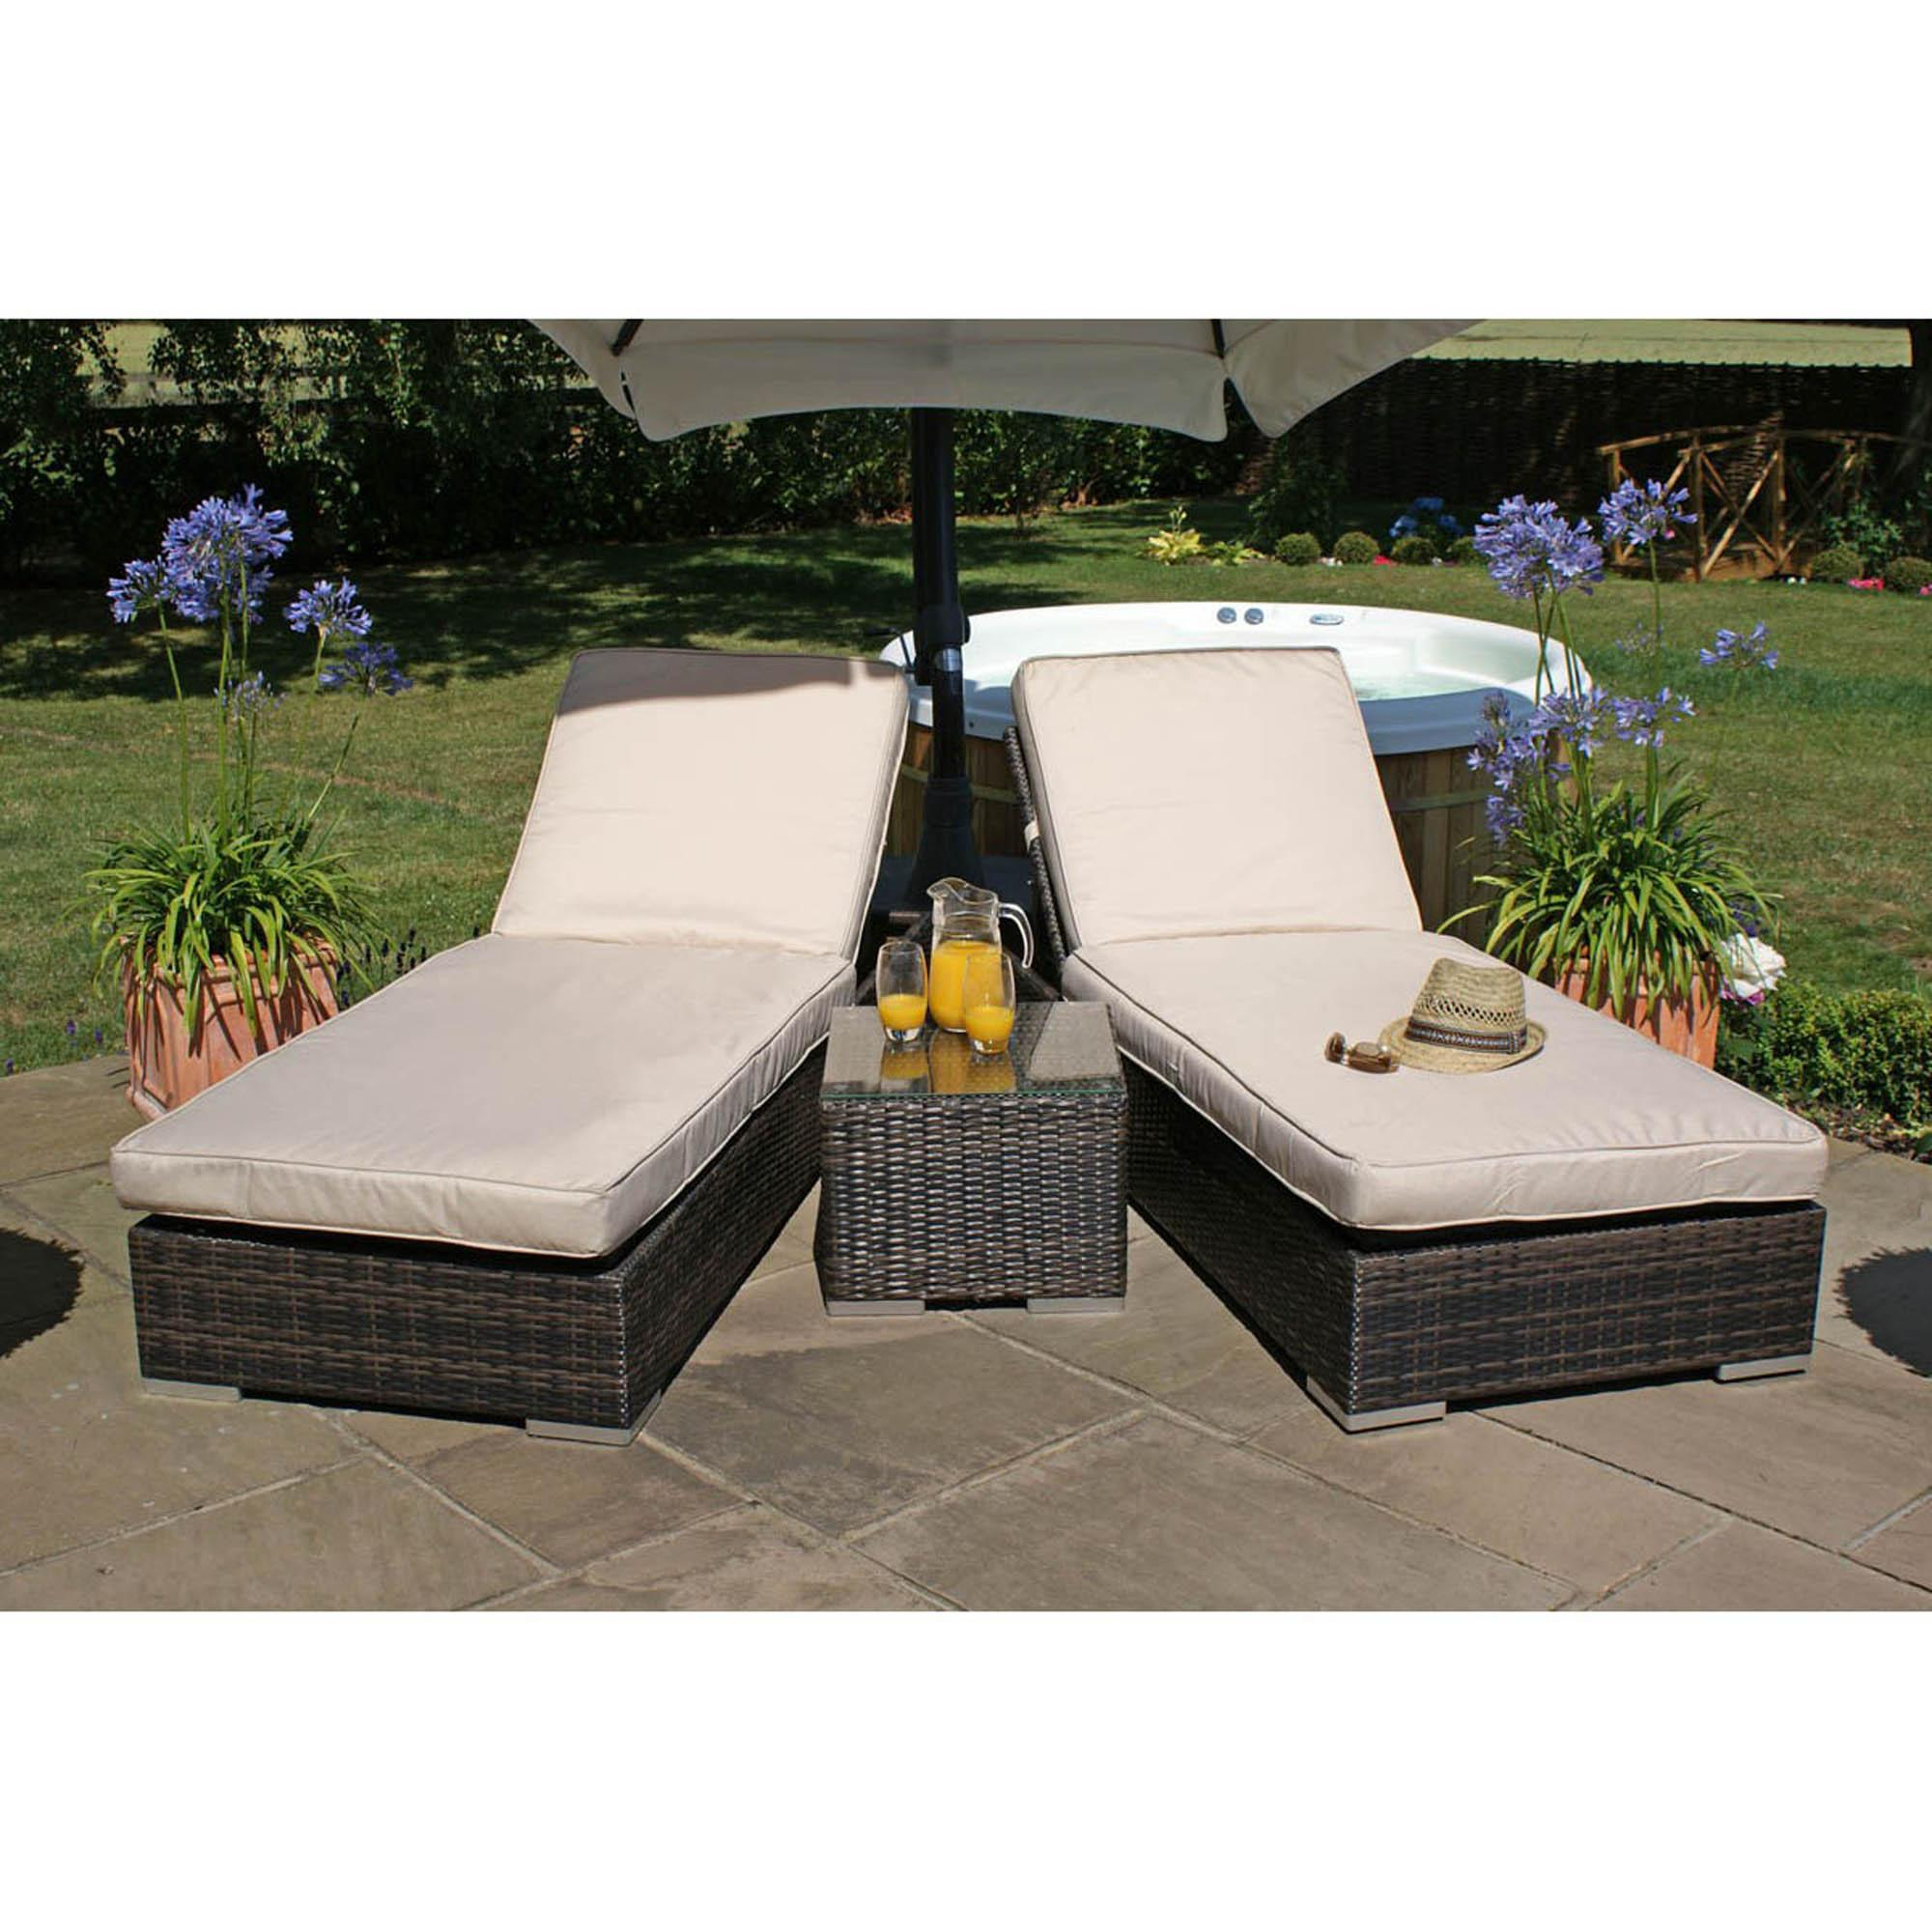 garden loungers maze rattan orlando brown set of 2 sun loungers. loz_exclusively_online CGMHTXJ